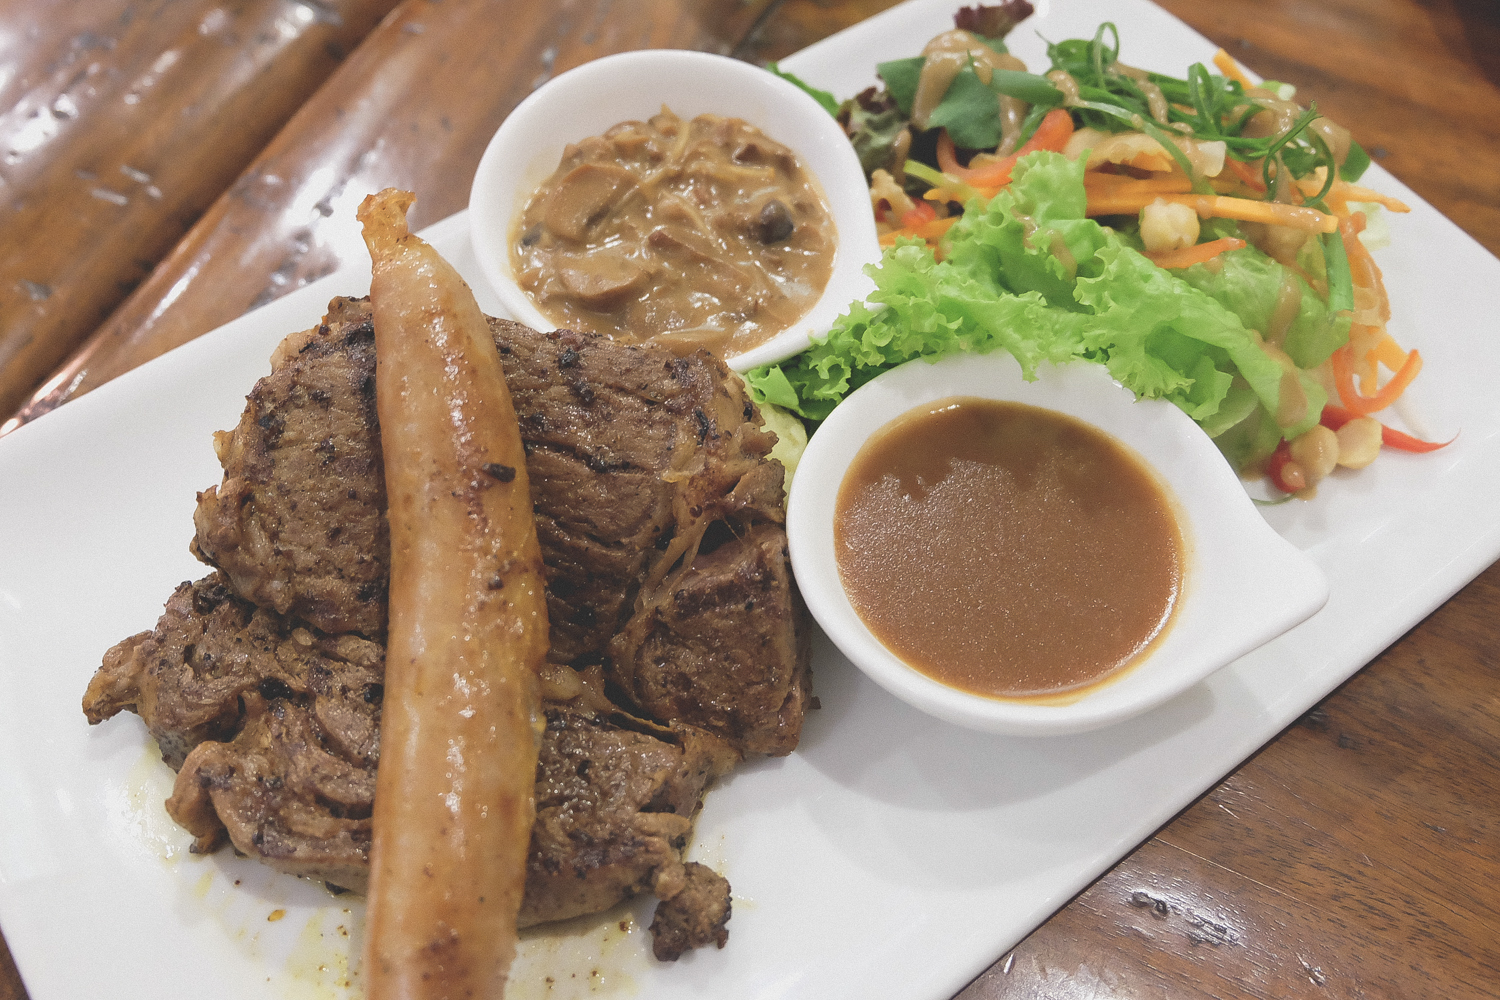 Barbecue nights at Circa 1900, Where to dine in Cebu, Where to eat in Cebu, Restaurants, Food, Blog, food blogger, Cebu Flood Blogger, Cebu Fashion Blogger, Barbecue, Dining, Wine nights Cebu